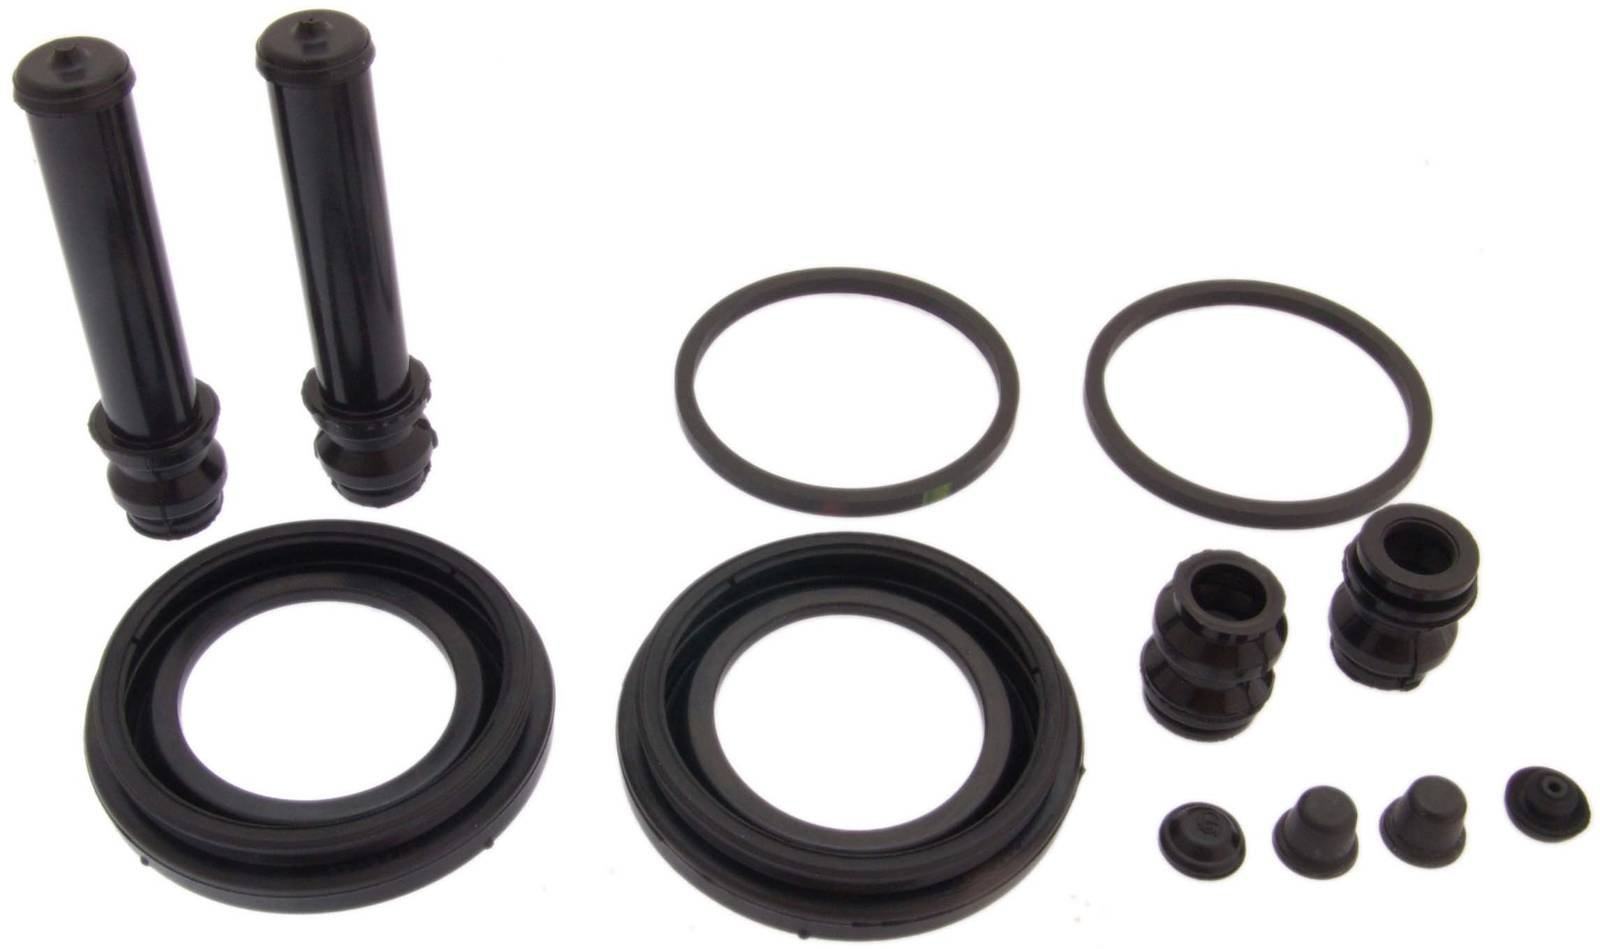 04479-60030 / 447960030 - Cylinder Kit For Toyota